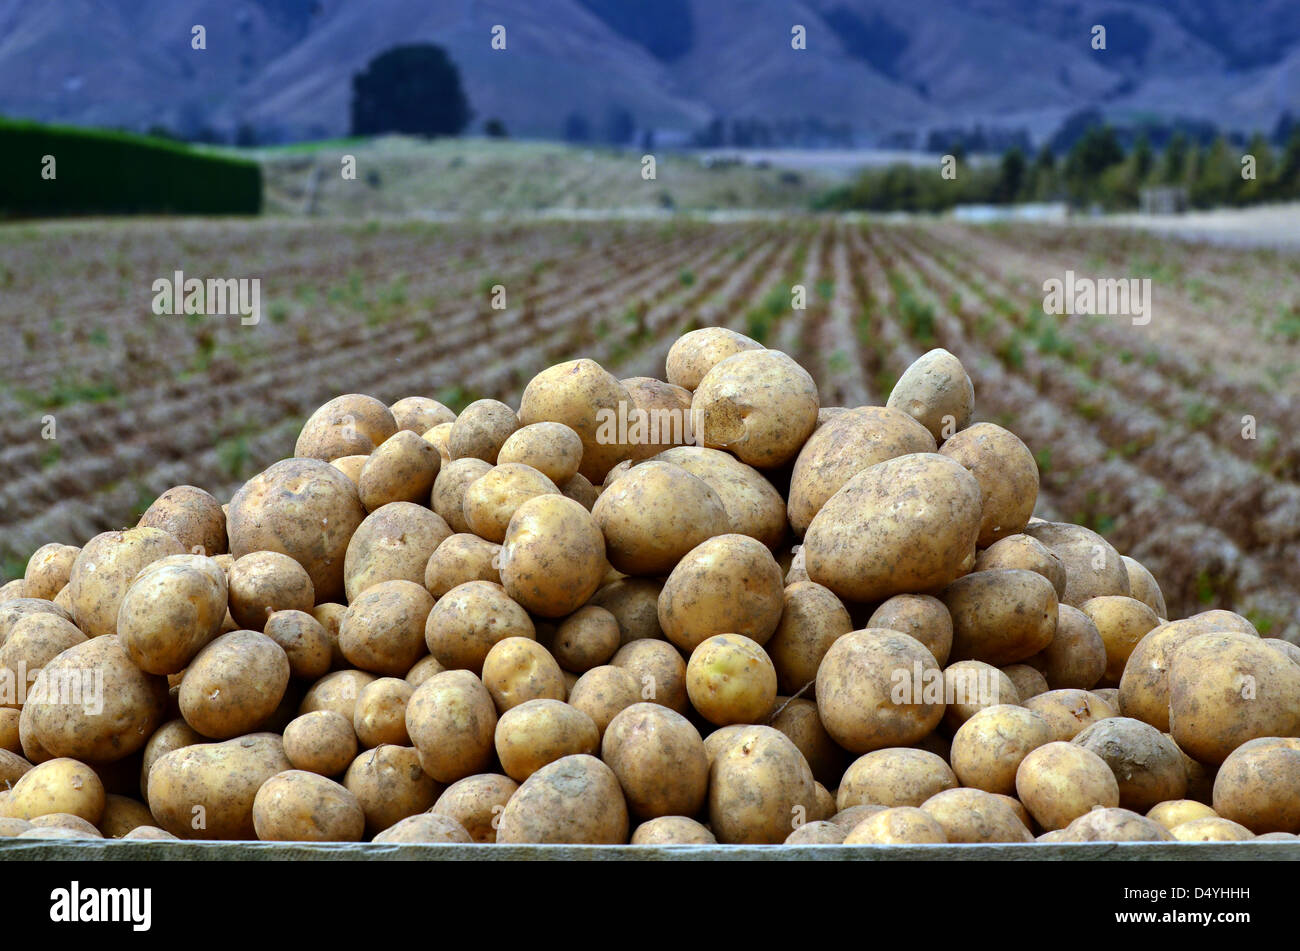 Fresh potatoes inside a container in a potatoes field at the North Island of New Zealand. Stock Photo